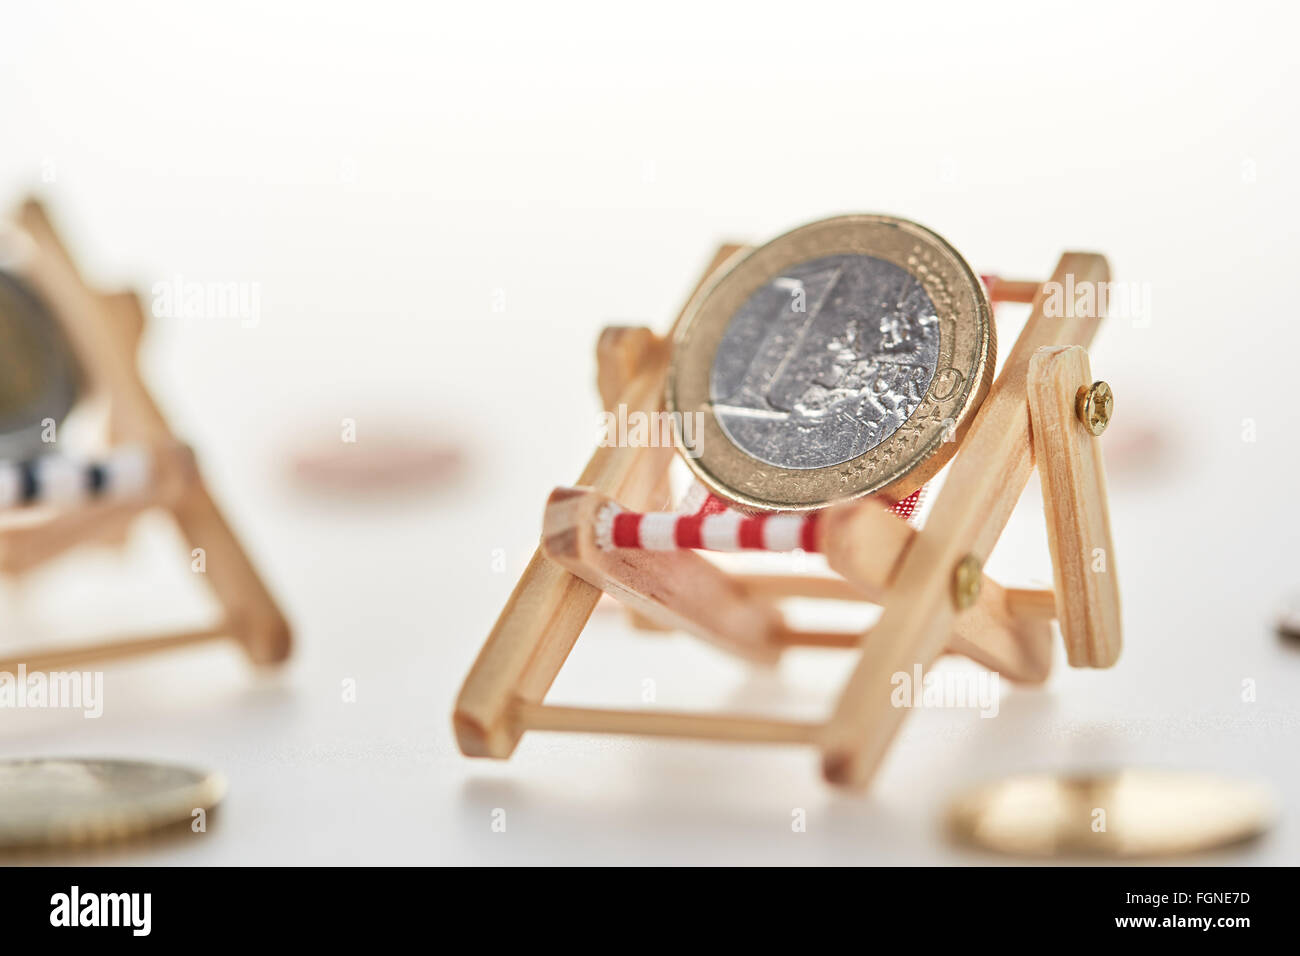 Pension concept shot with euro coin money relaxing on miniature lounger - Stock Image